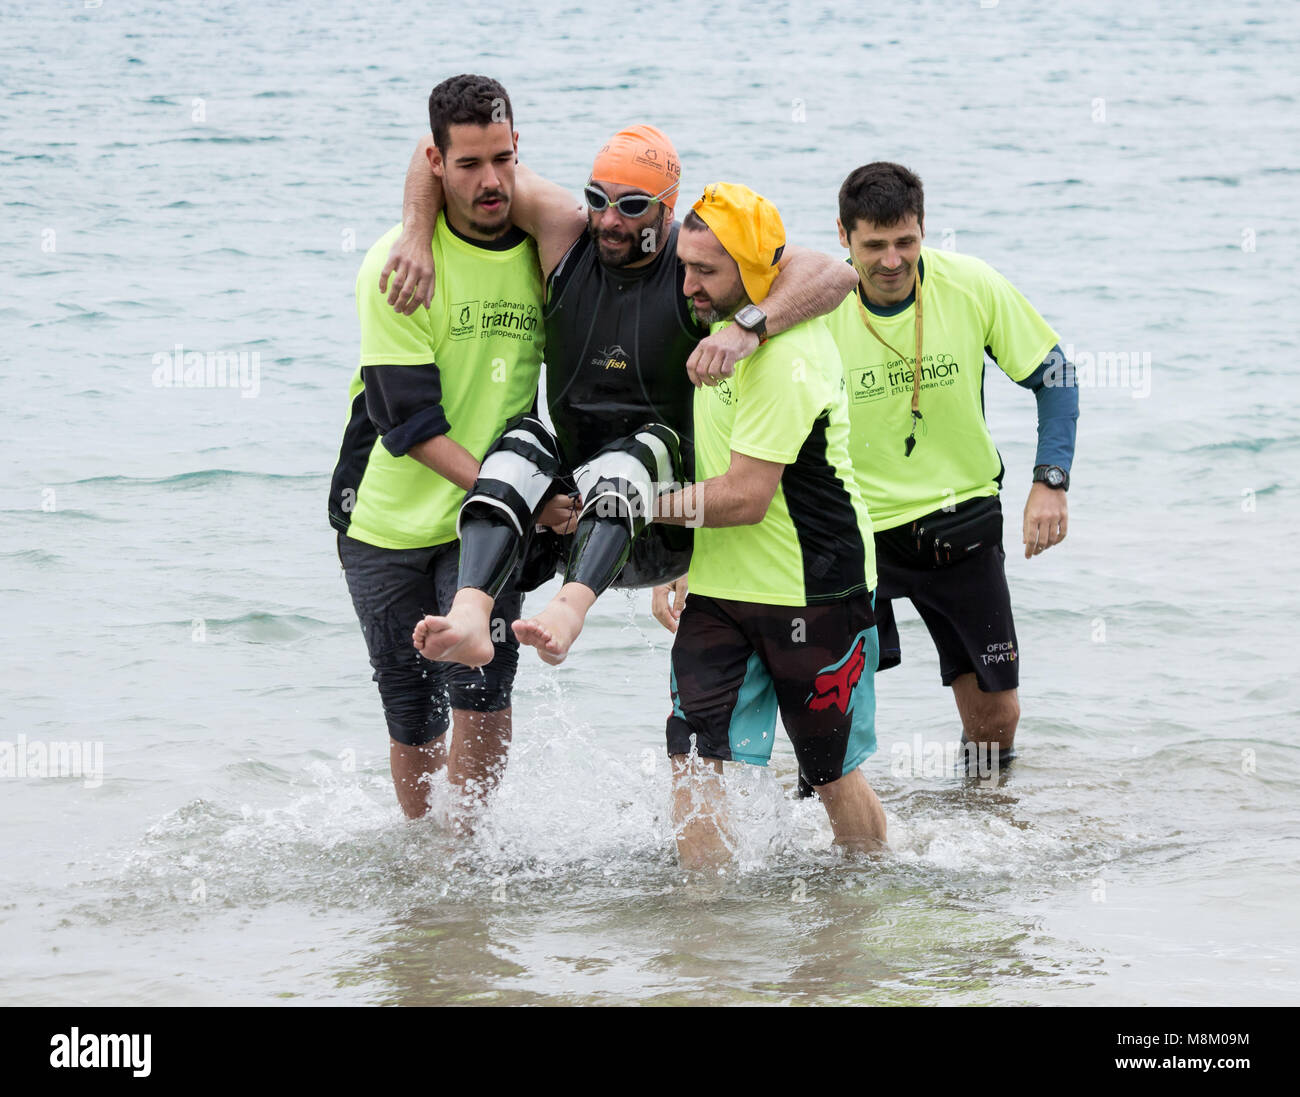 A disabled triathlete is helped out of the water after completing the swim leg of the sprint triathlon at the ETU - Stock Image